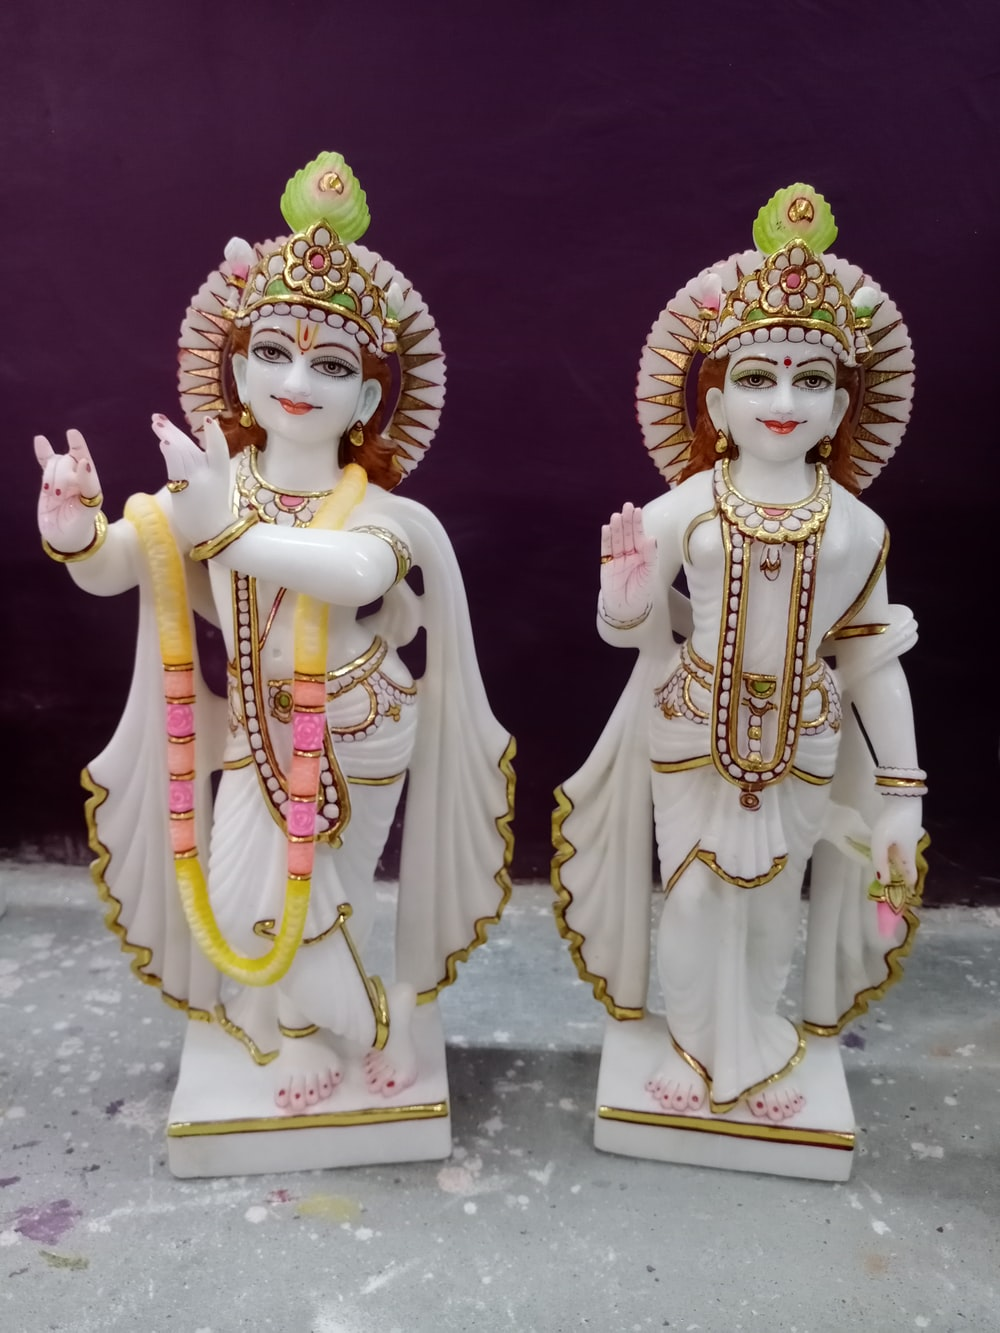 2 gold and red hindu deity figurines